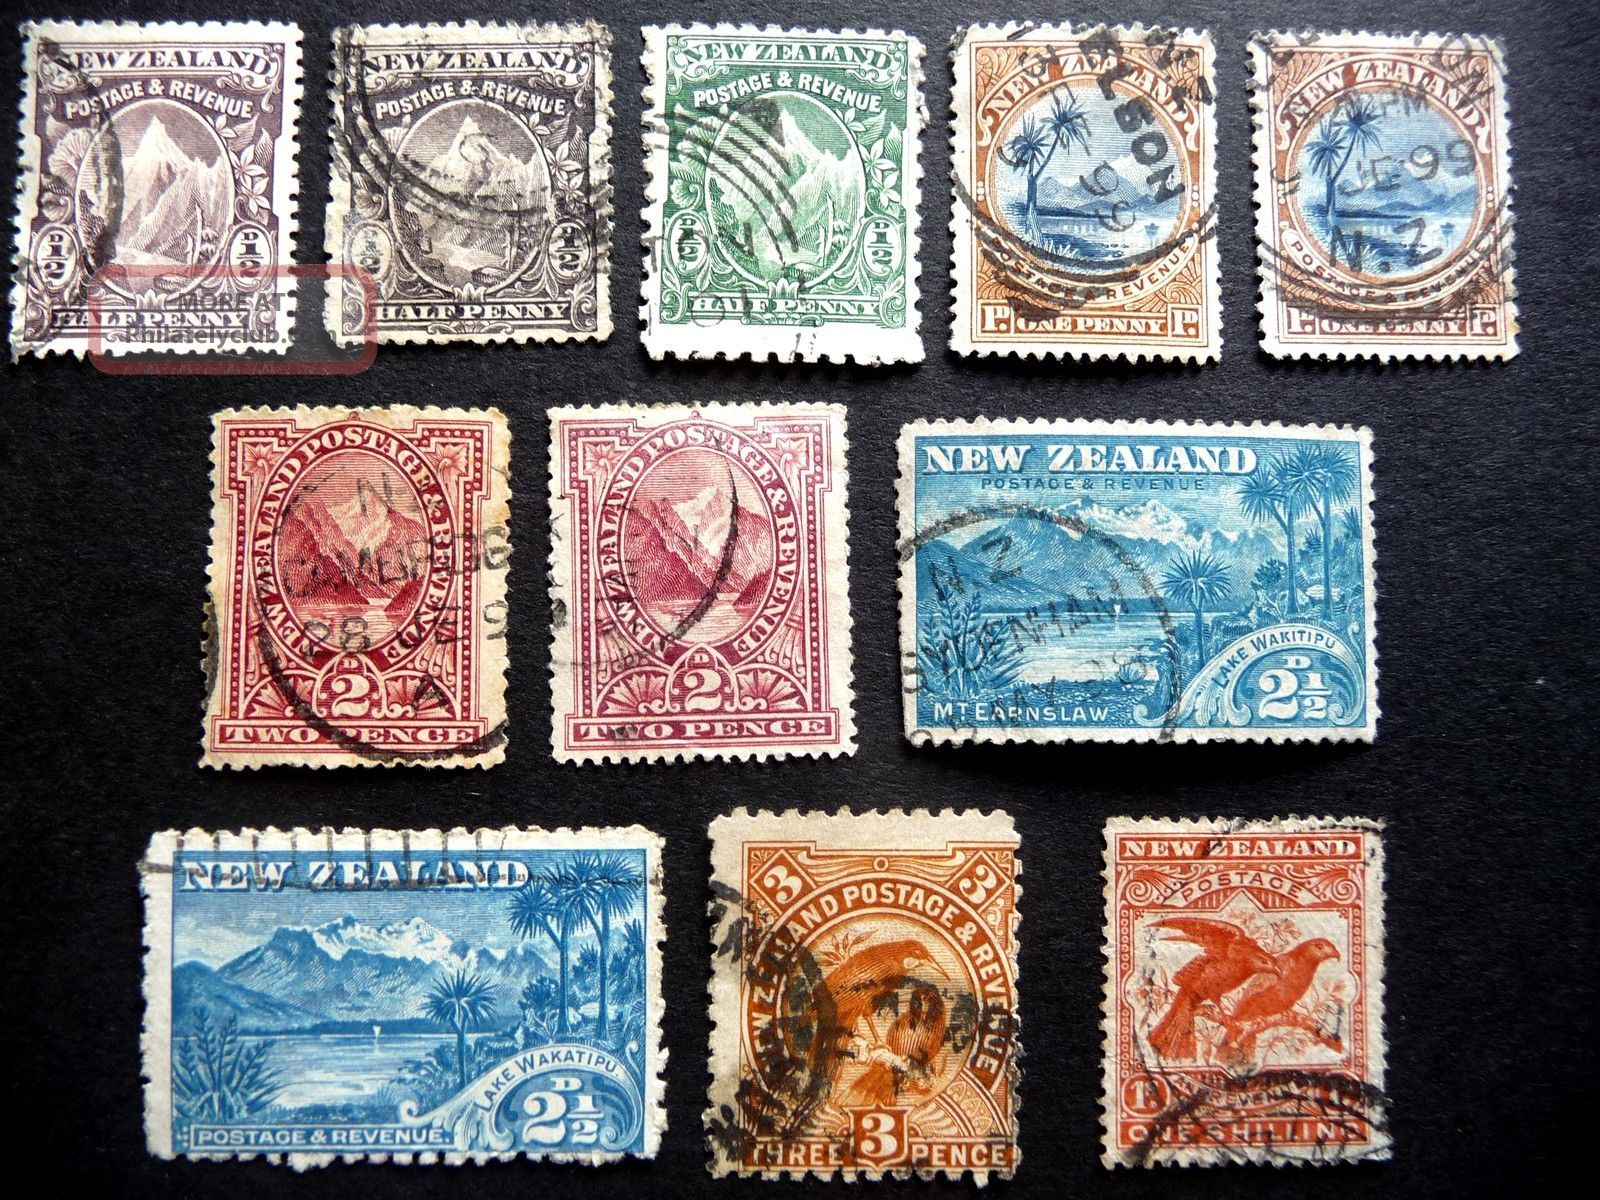 N Z Qvic 1898 - 1903 Pictorial Definitives No Wmk Sg246 - 50/57 ? As Seen Australia & Oceania photo